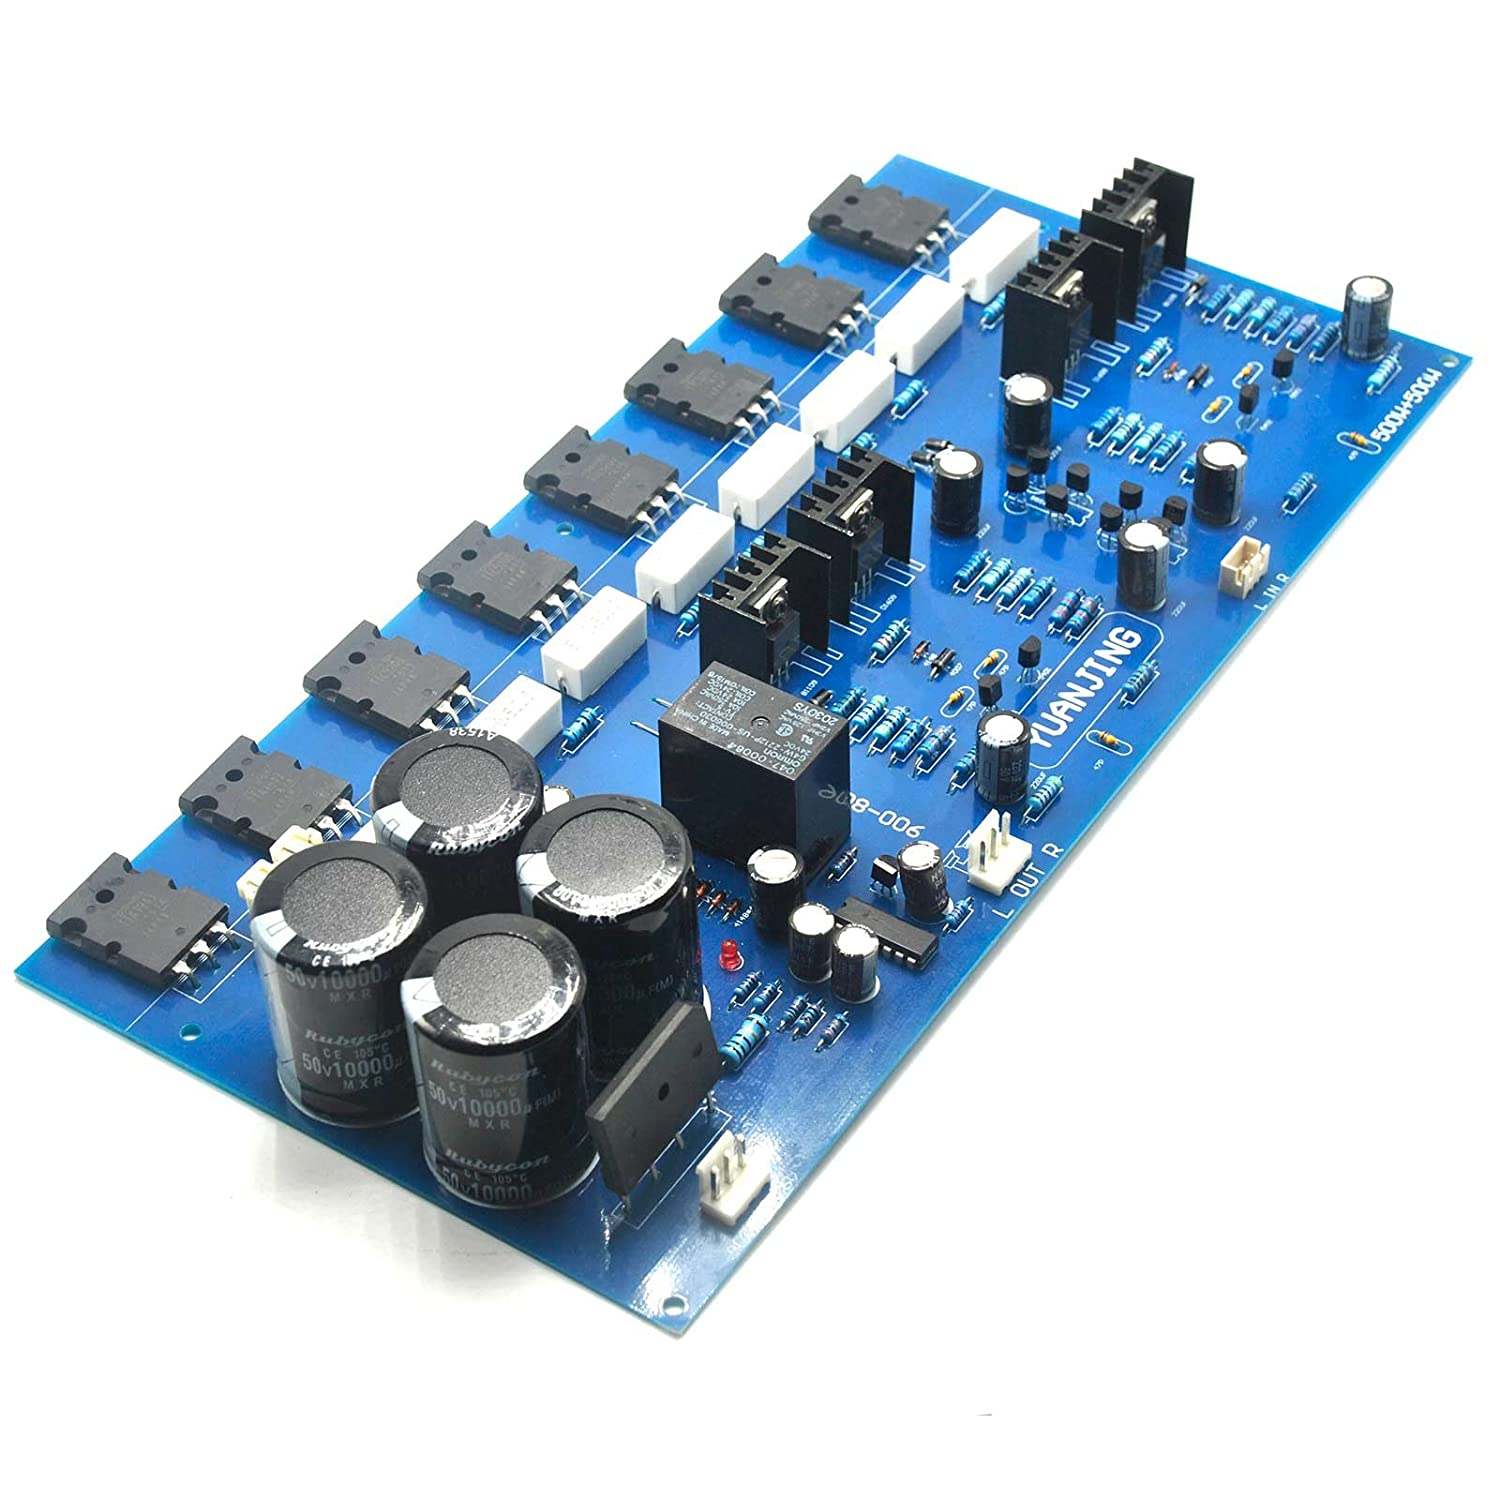 2sc5200 2sa1943 High Power Amplifier Board 400w Gain Control Circuit Diagram Amplifiercircuit Musical Instruments